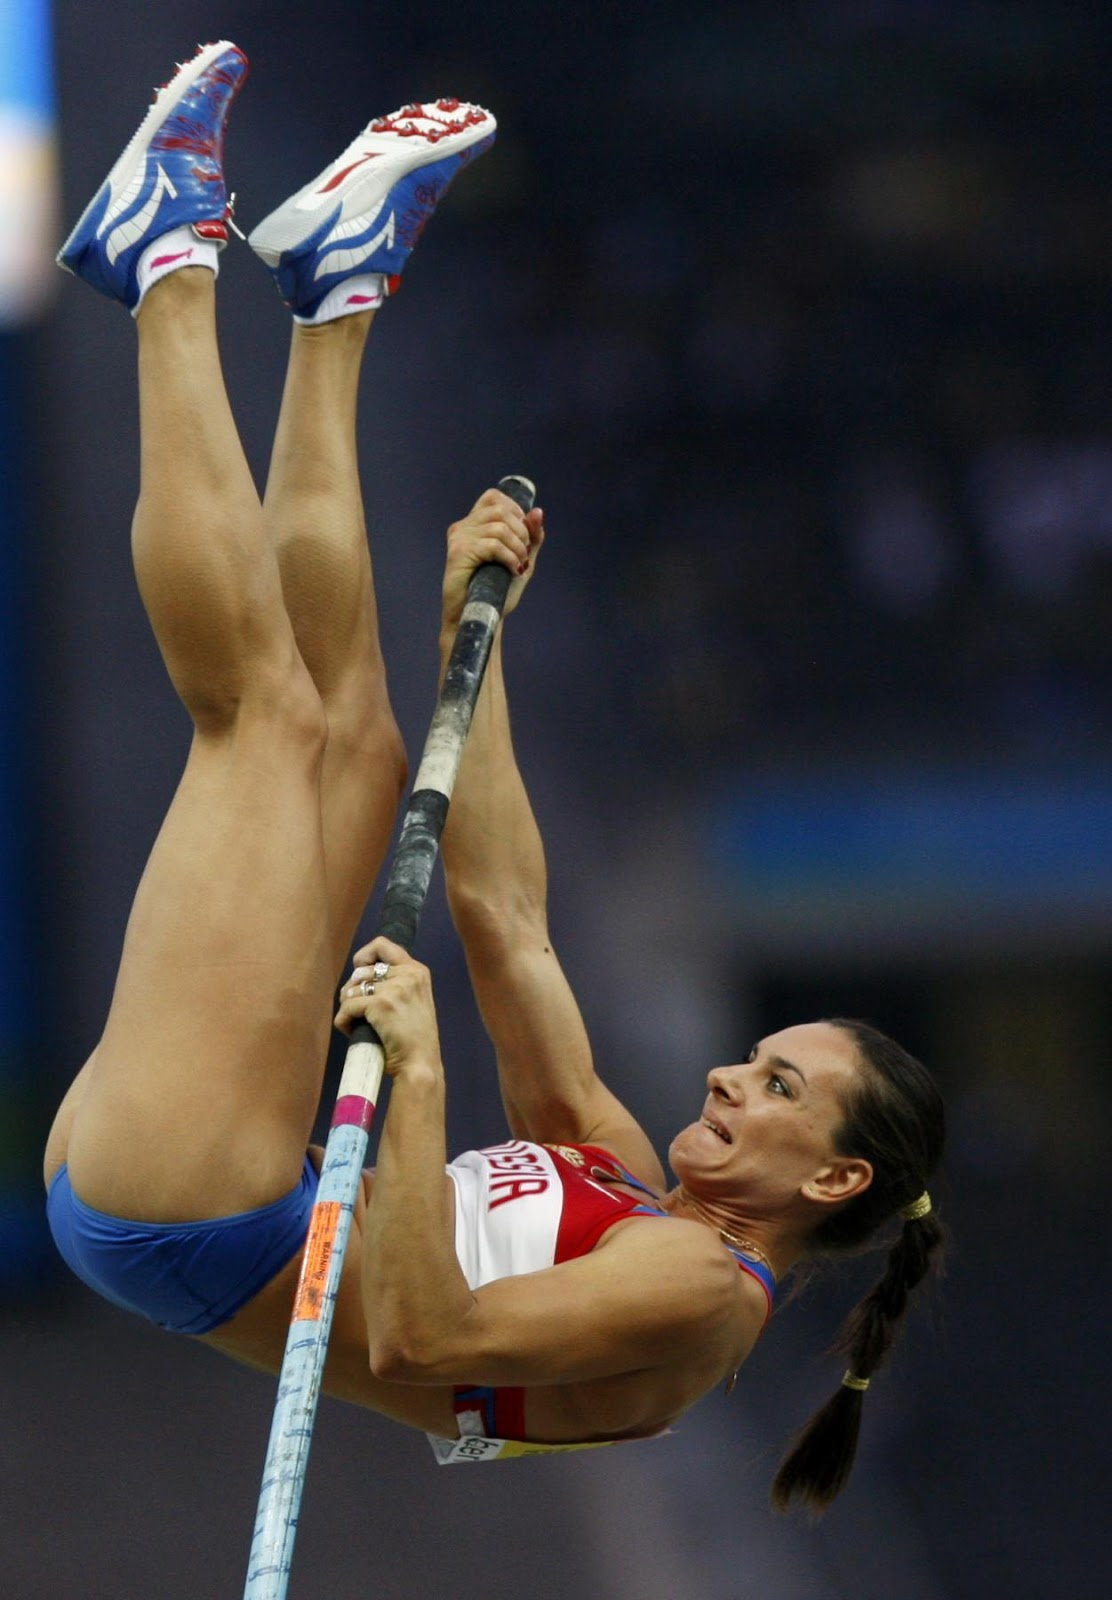 Pole vault beauty naked — 6